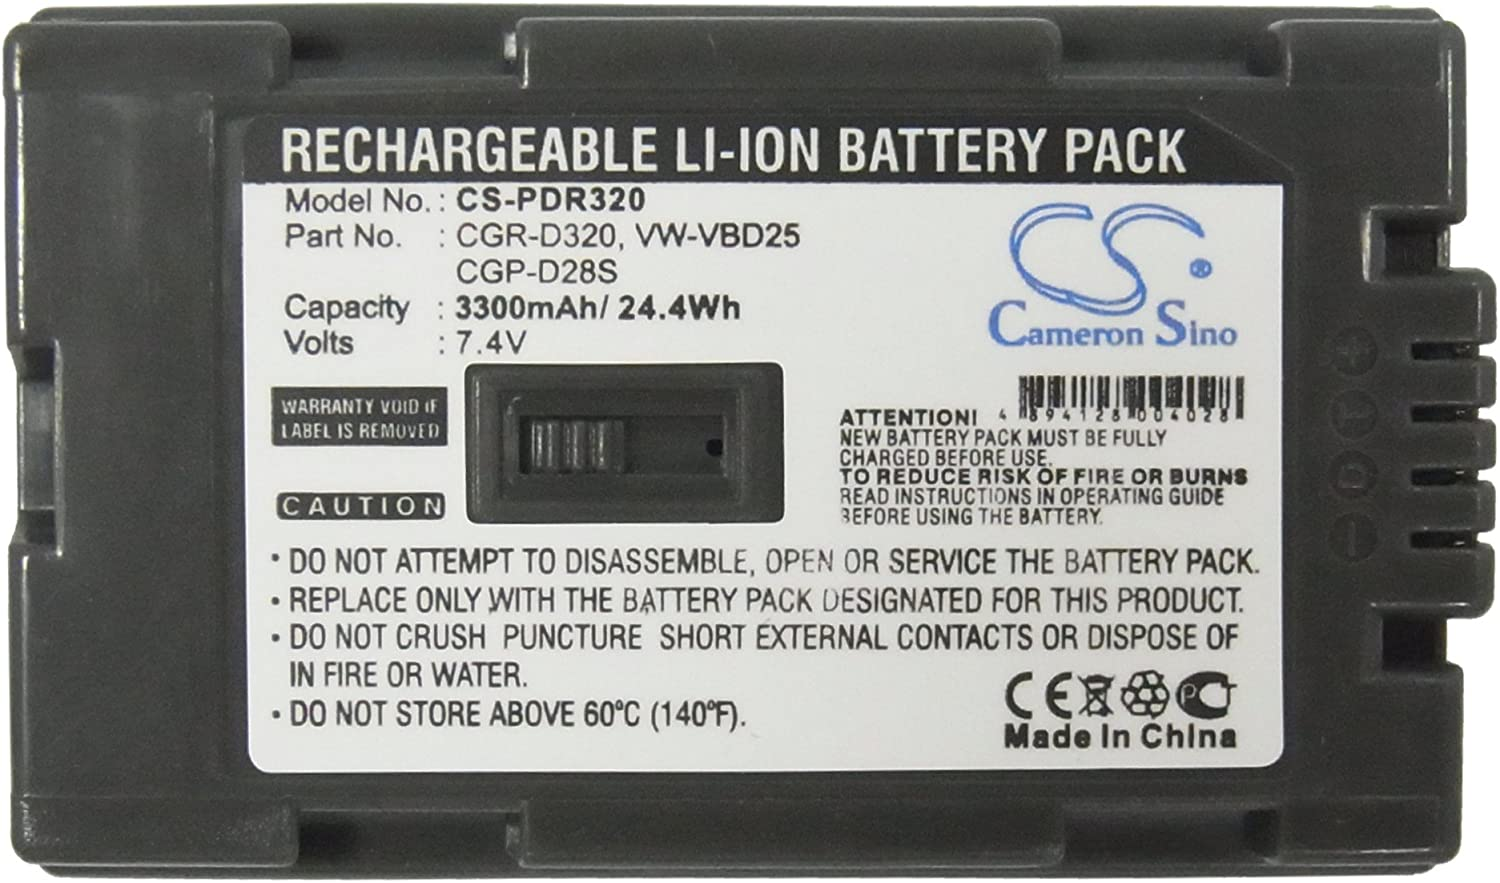 XPS Replacement Battery Compatible with HITACHI DZ-MV200A DZ-MV200E DZ-MV208E DZ-MV230A DZ-MV230EPANASONIC AG-DVC15 CGR-D28A//1B CGR-D28SE//1B CGR-D320A//1B